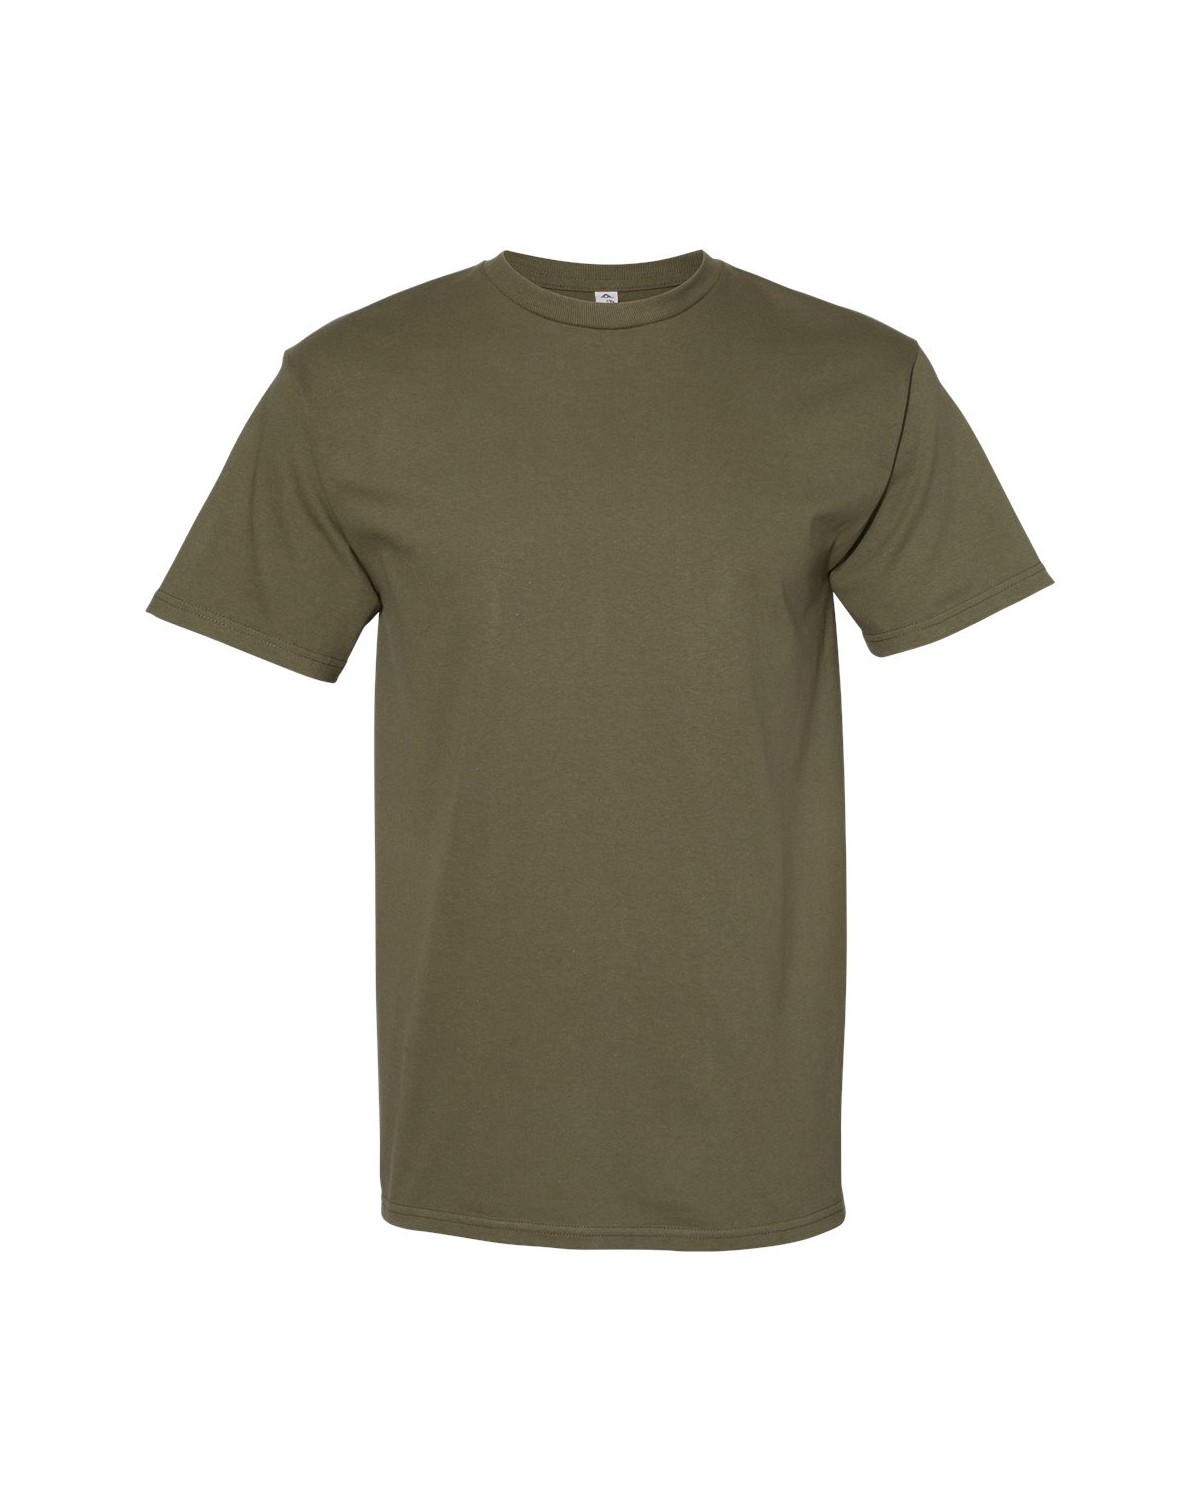 1701 Alstyle MILITARY GREEN